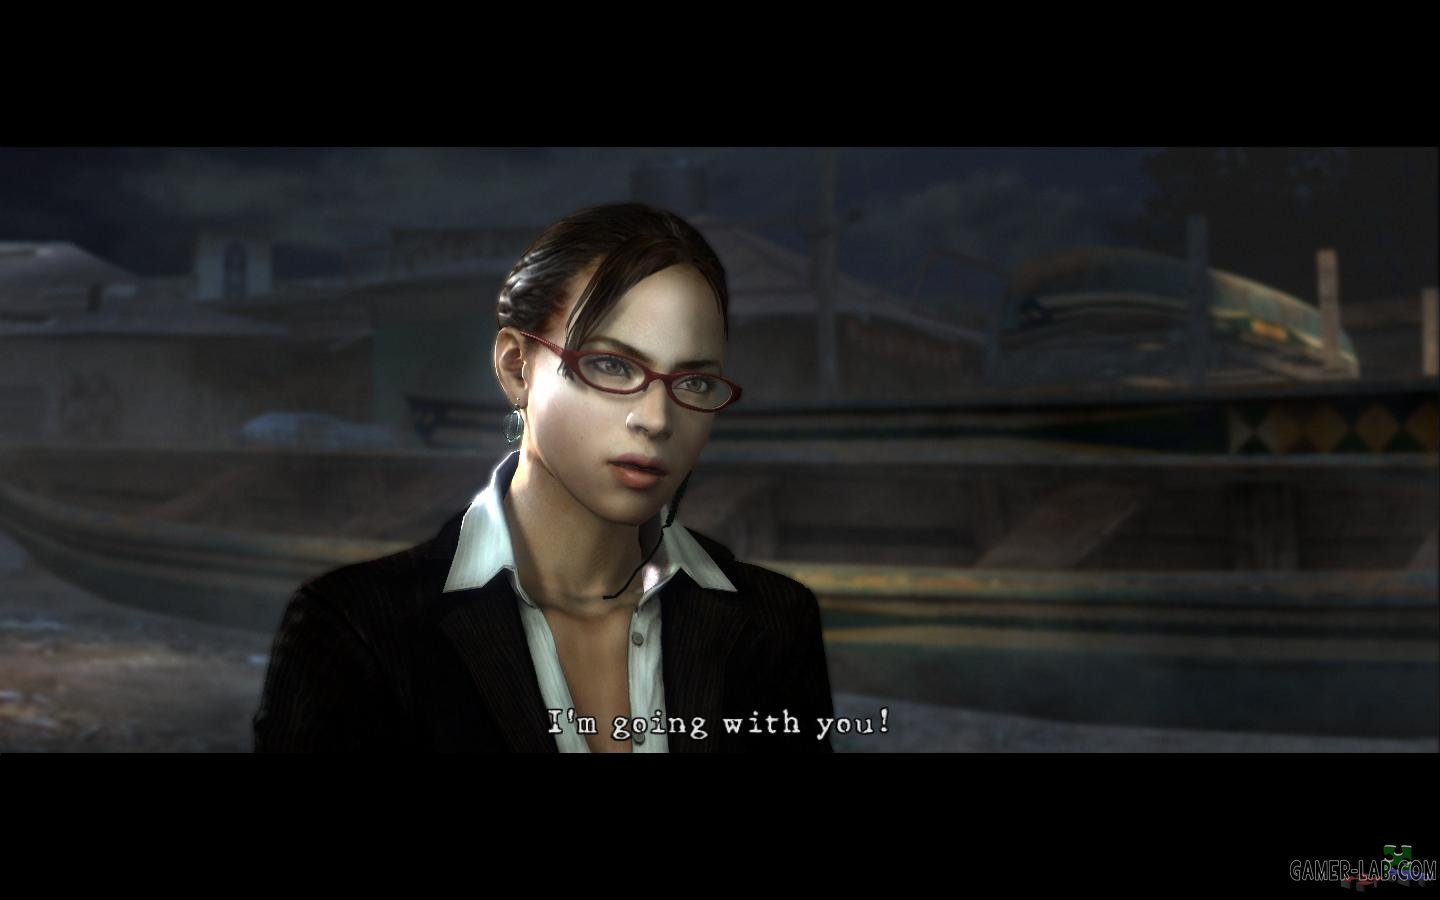 Sheva in Black Office reSkin